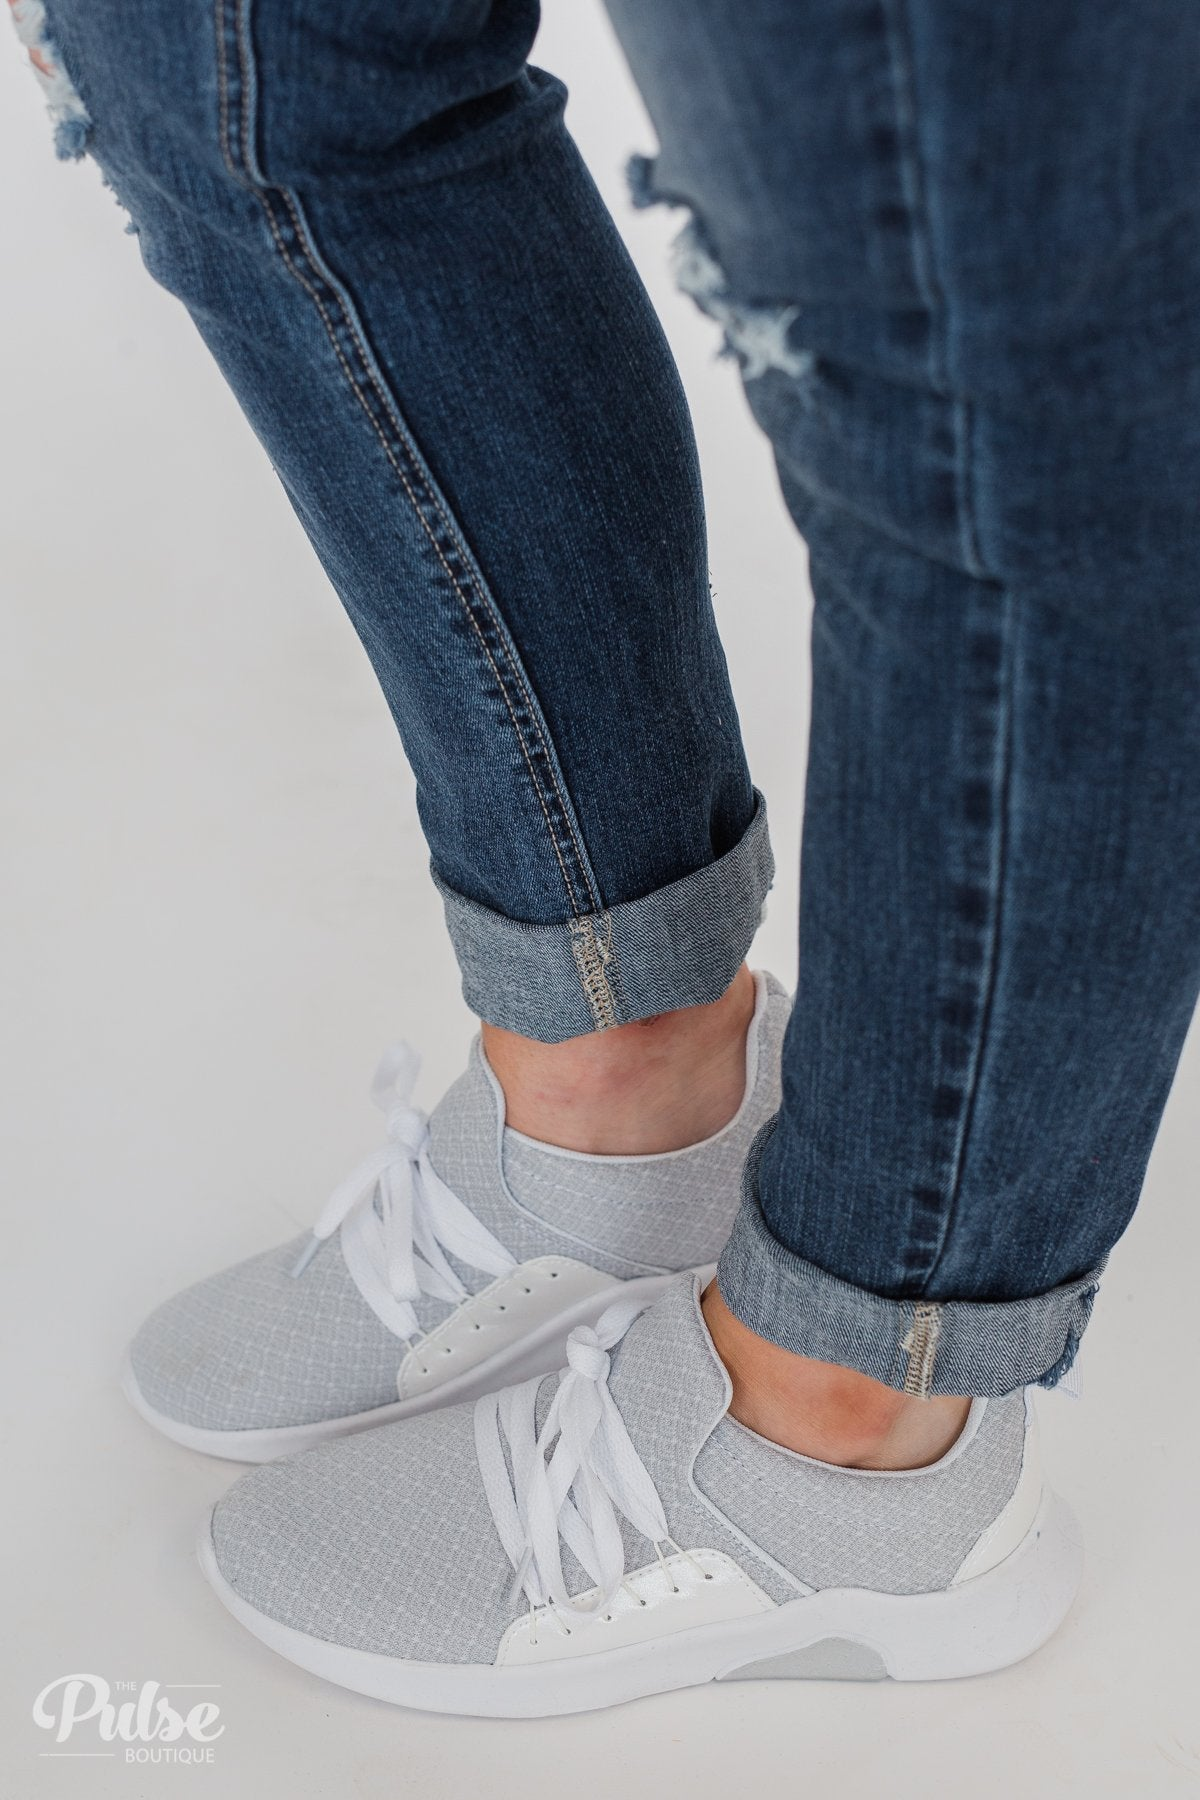 Not Rated DIDI Sneakers- White & Grey